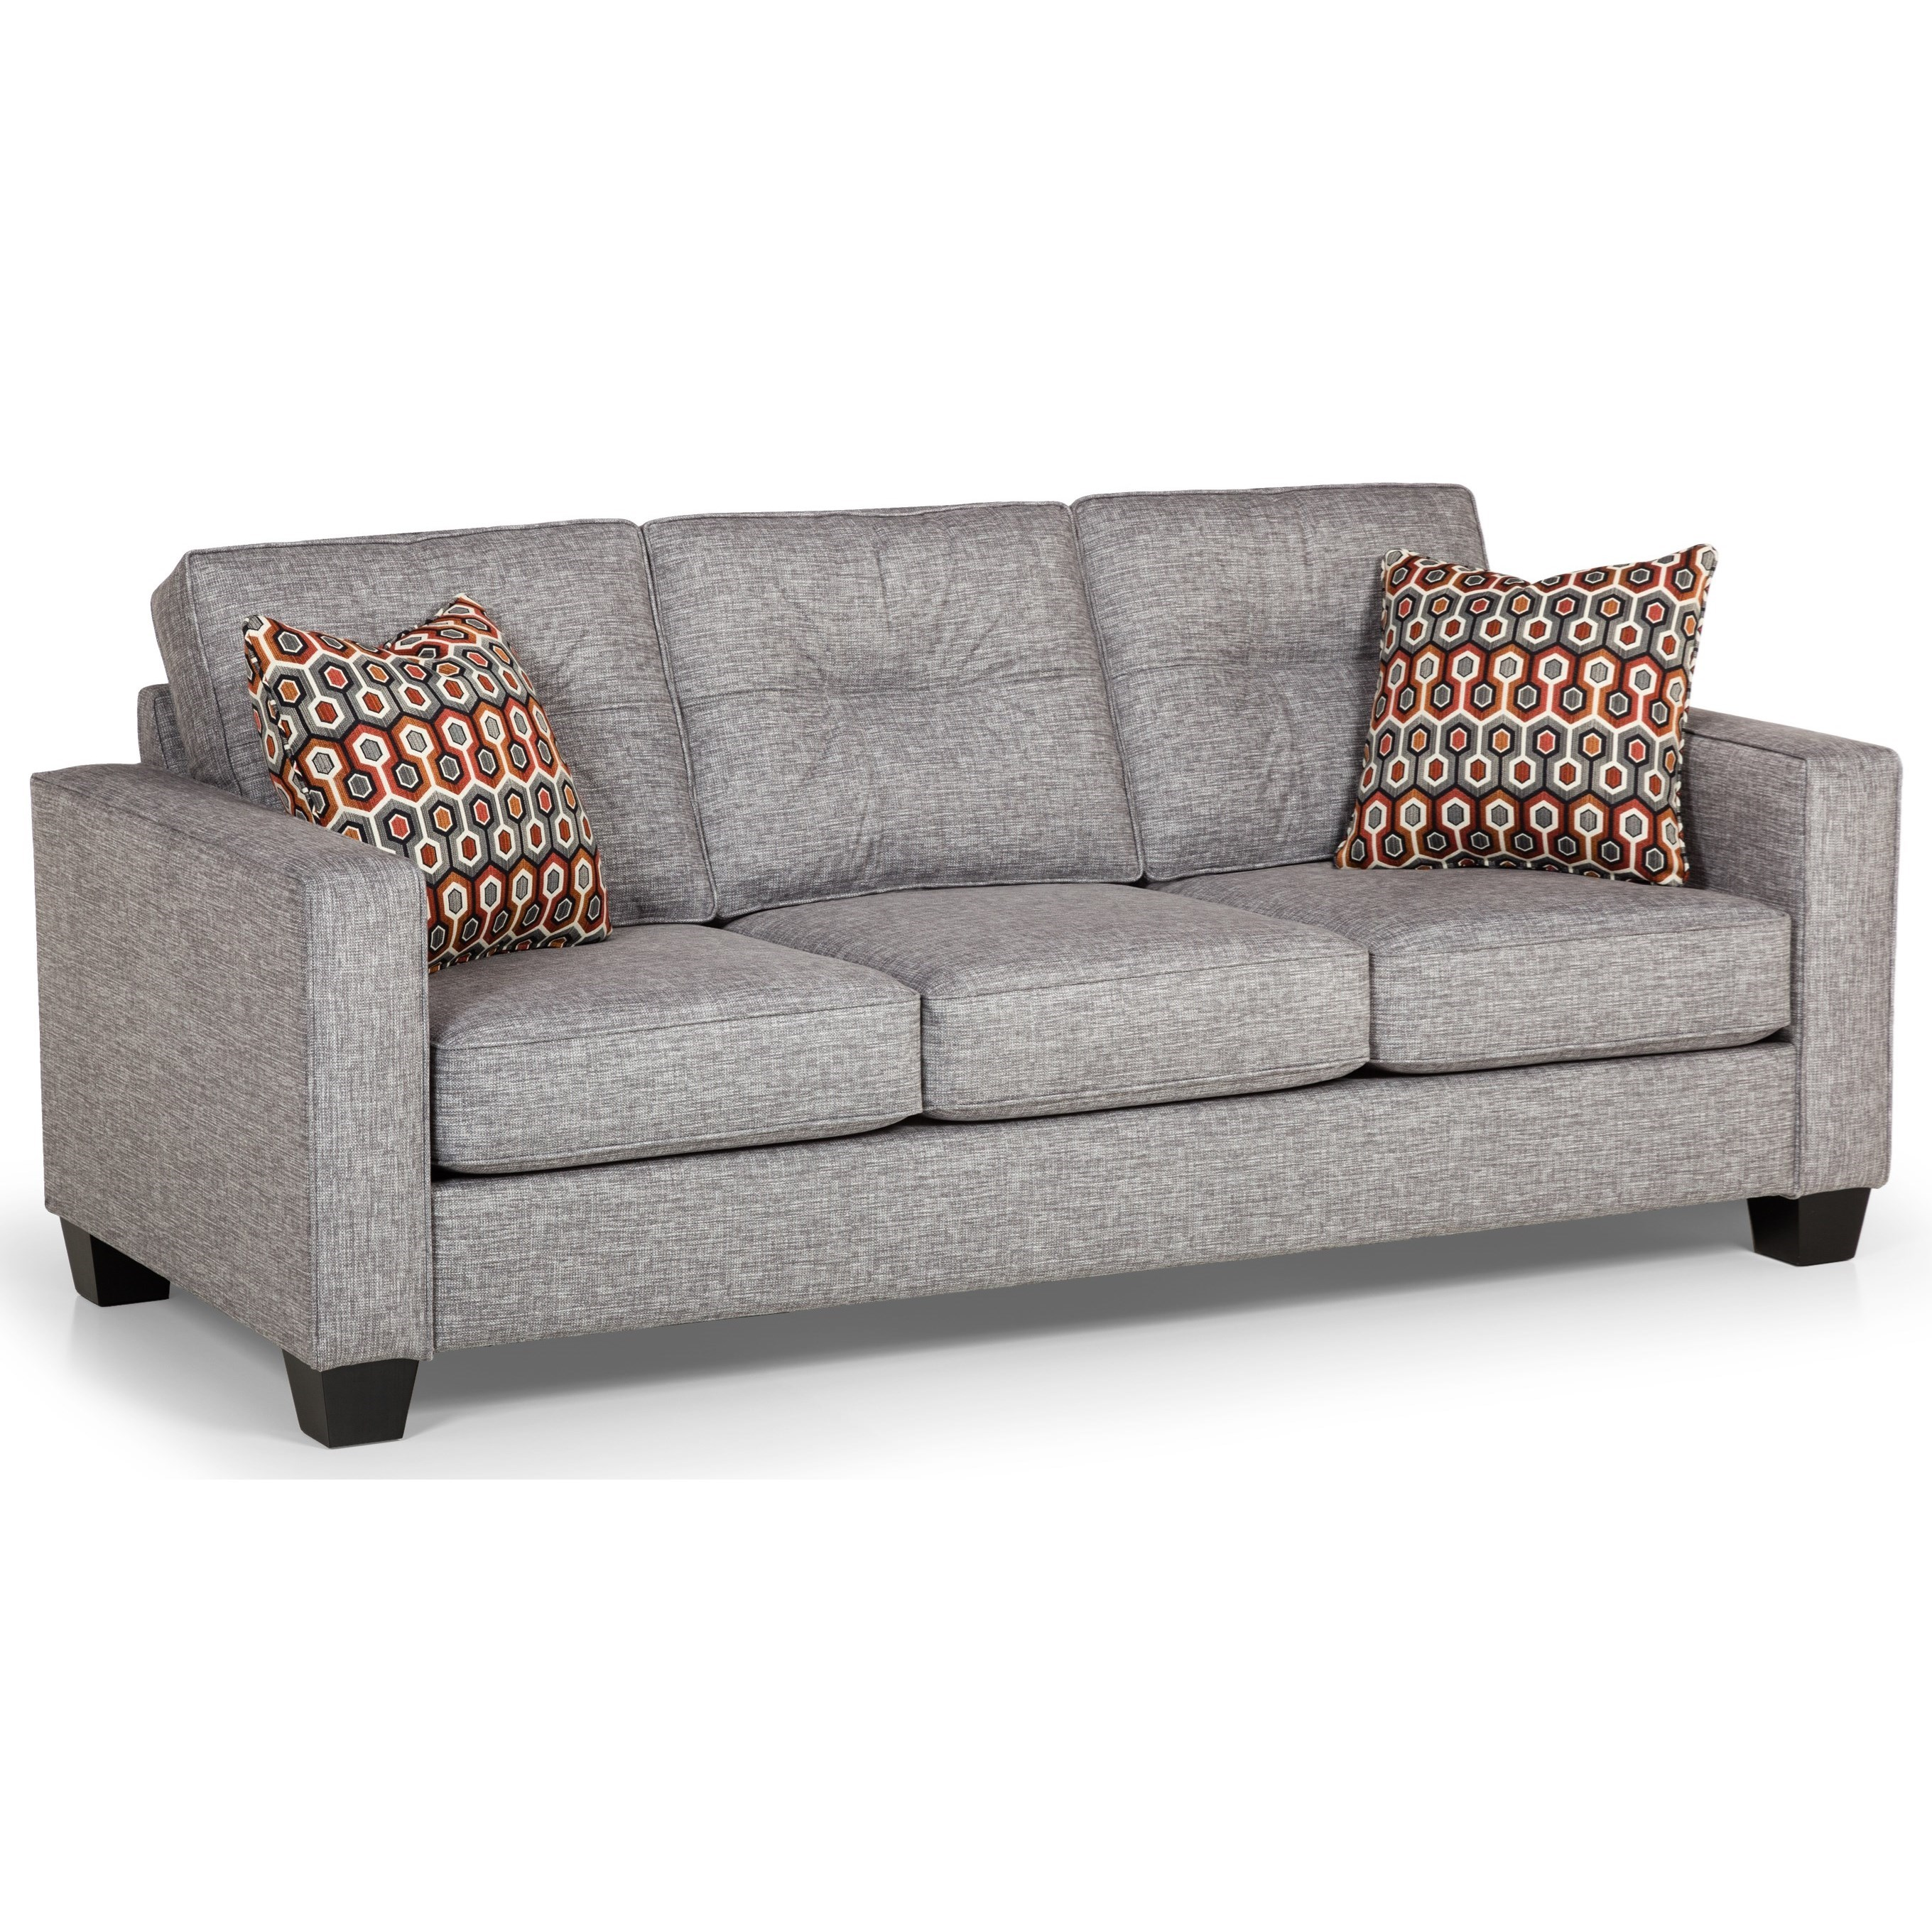 448 Sofa by Sunset Home at Sadler's Home Furnishings